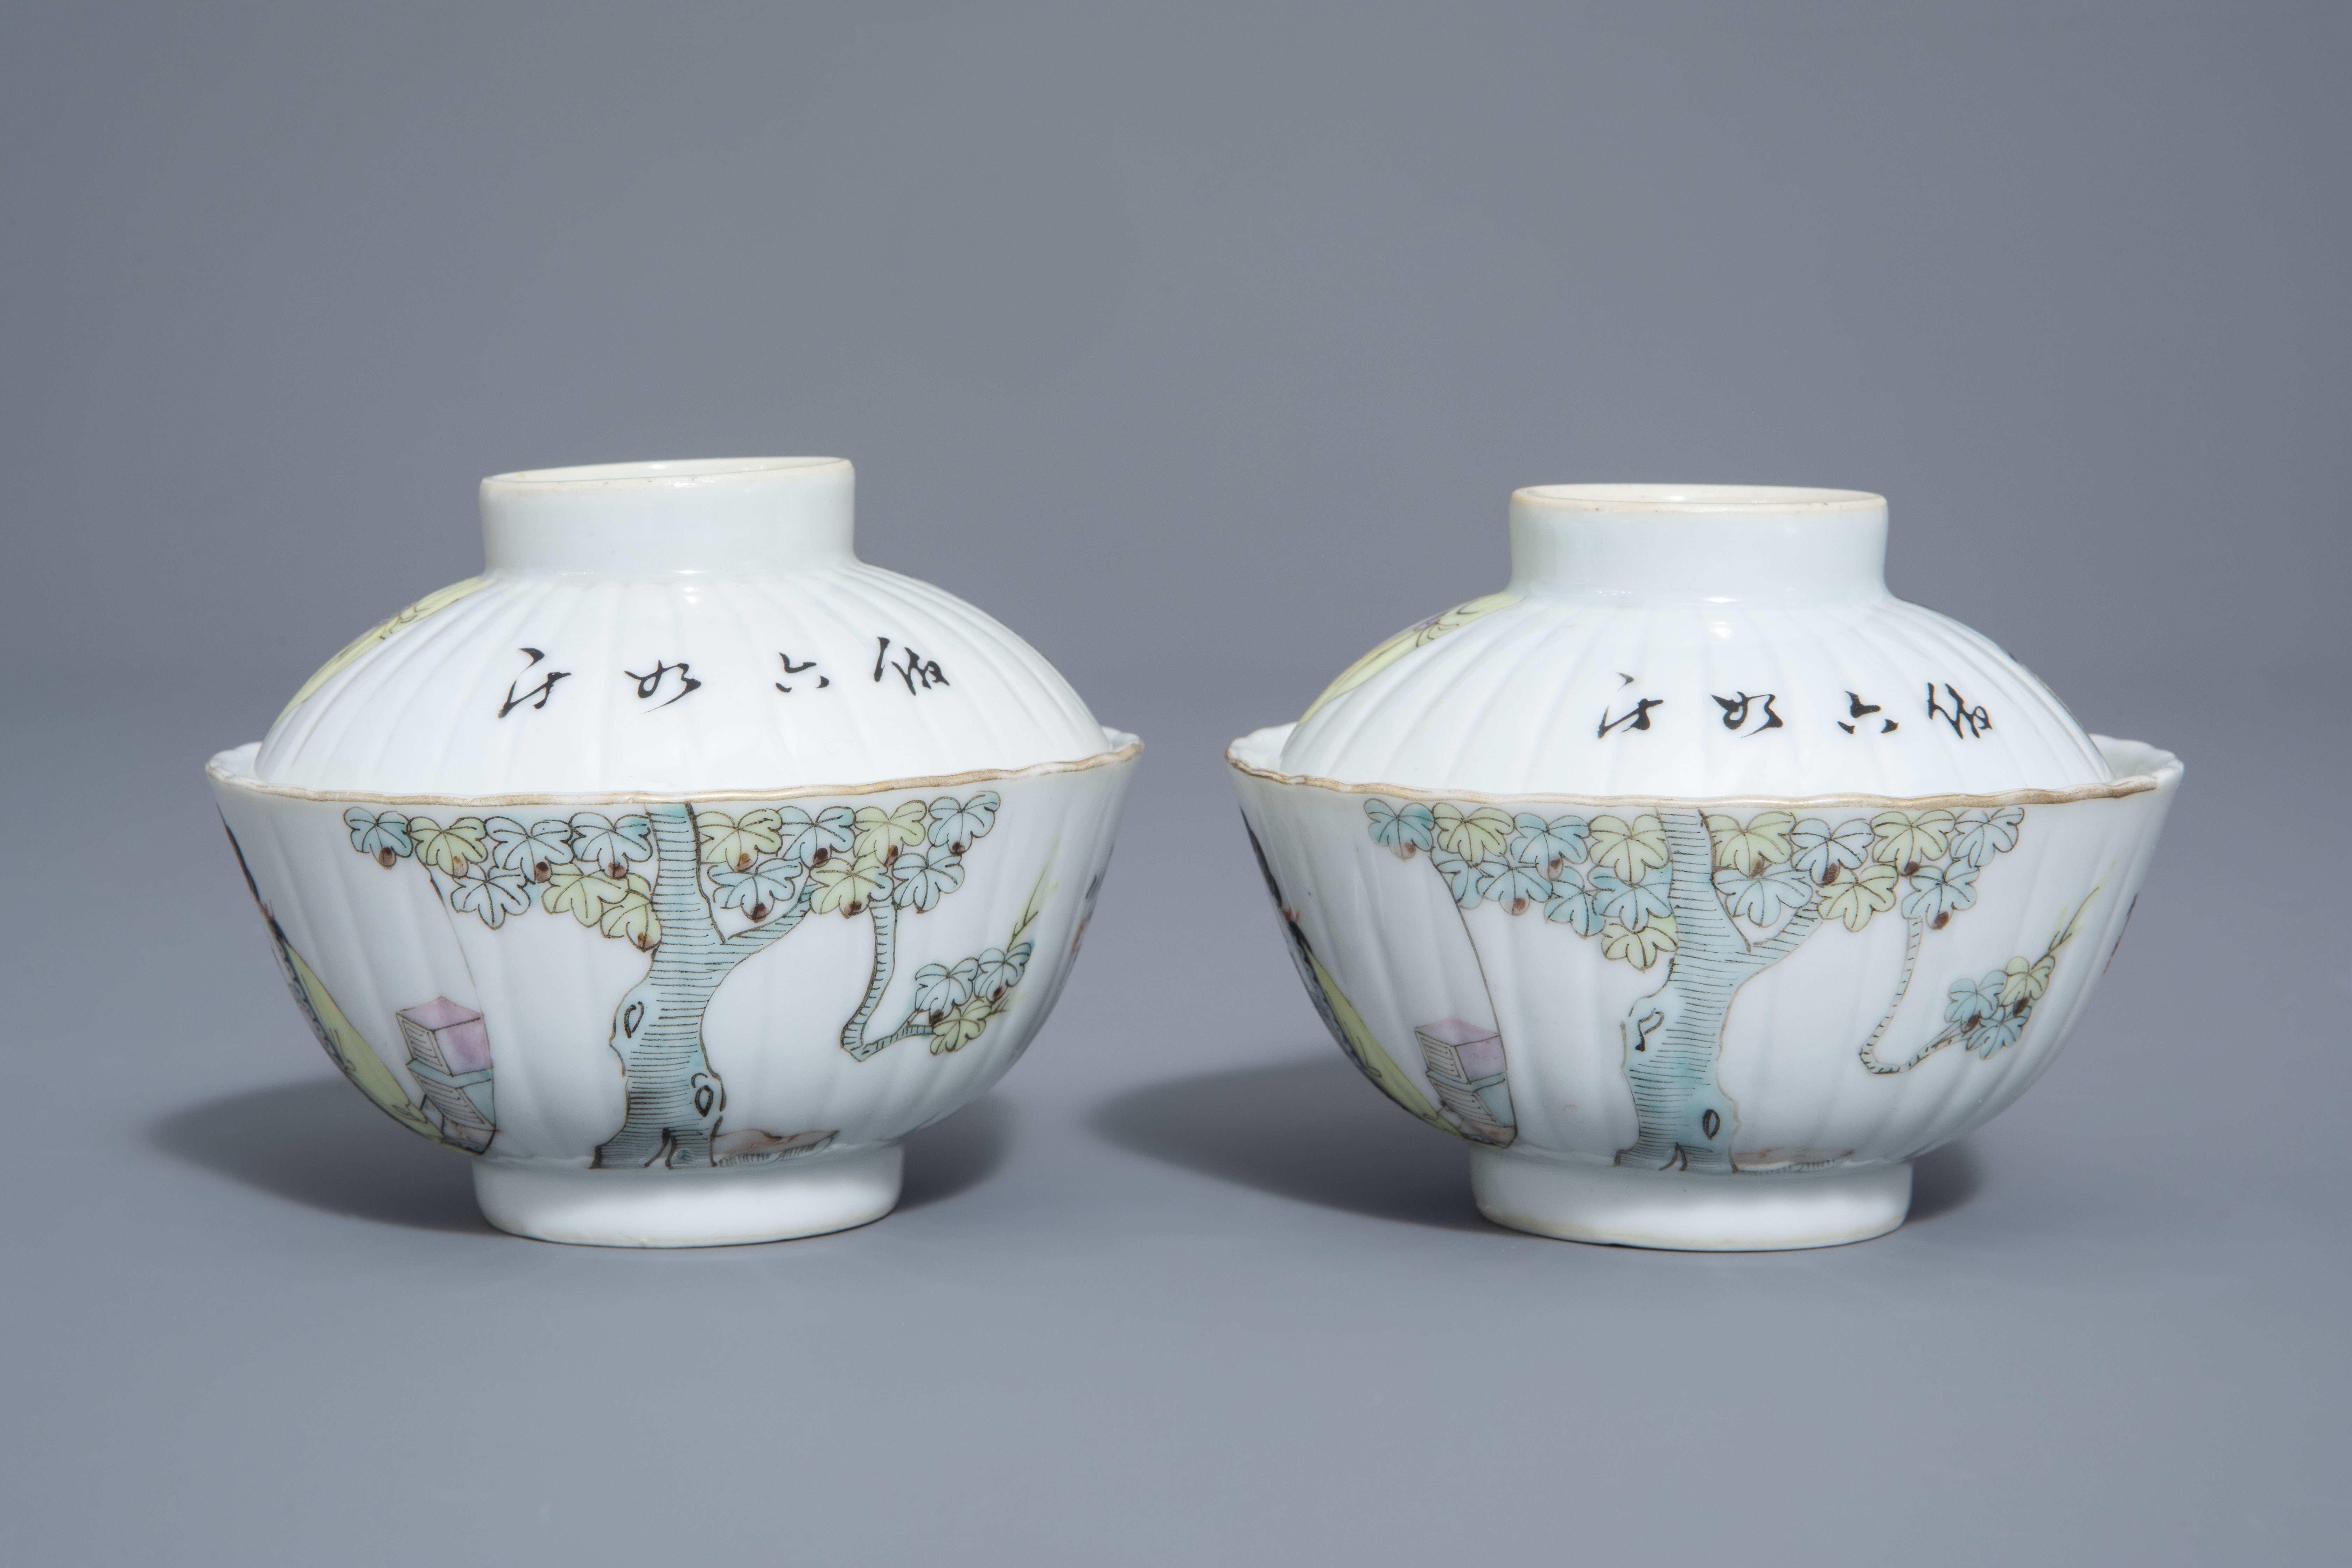 A Chinese seven-piece qianjiang cai tea service with figurative design, 19th/20th C. - Image 11 of 19